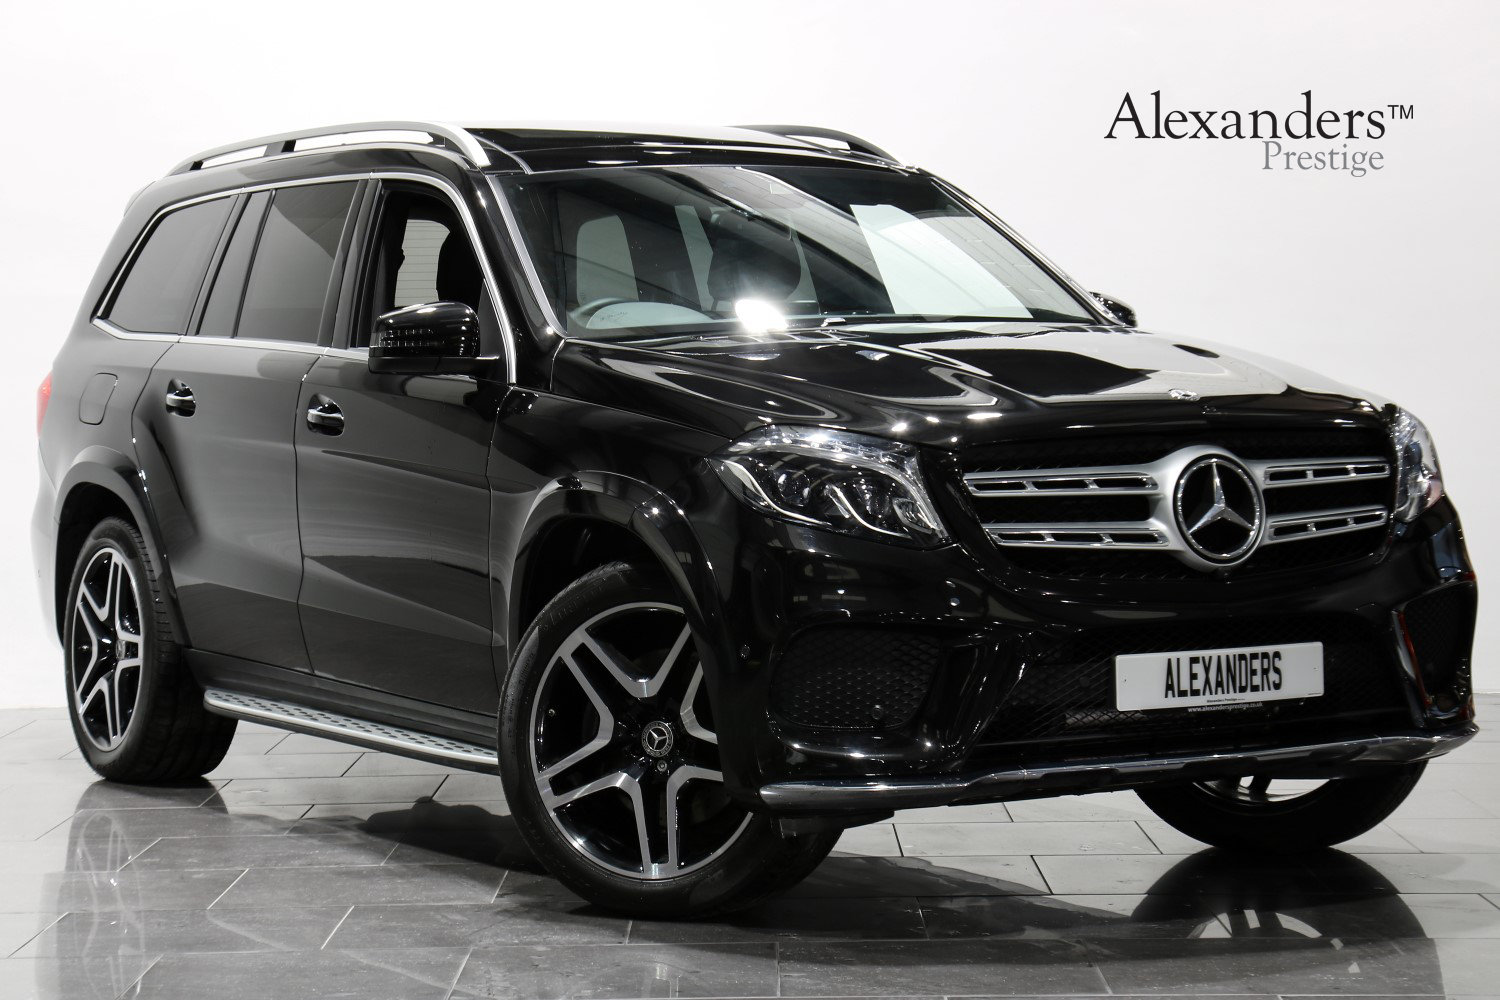 2018 18 68 MERCEDES BENZ GLS 350 D AMG LINE AUTO For Sale (picture 1 of 6)